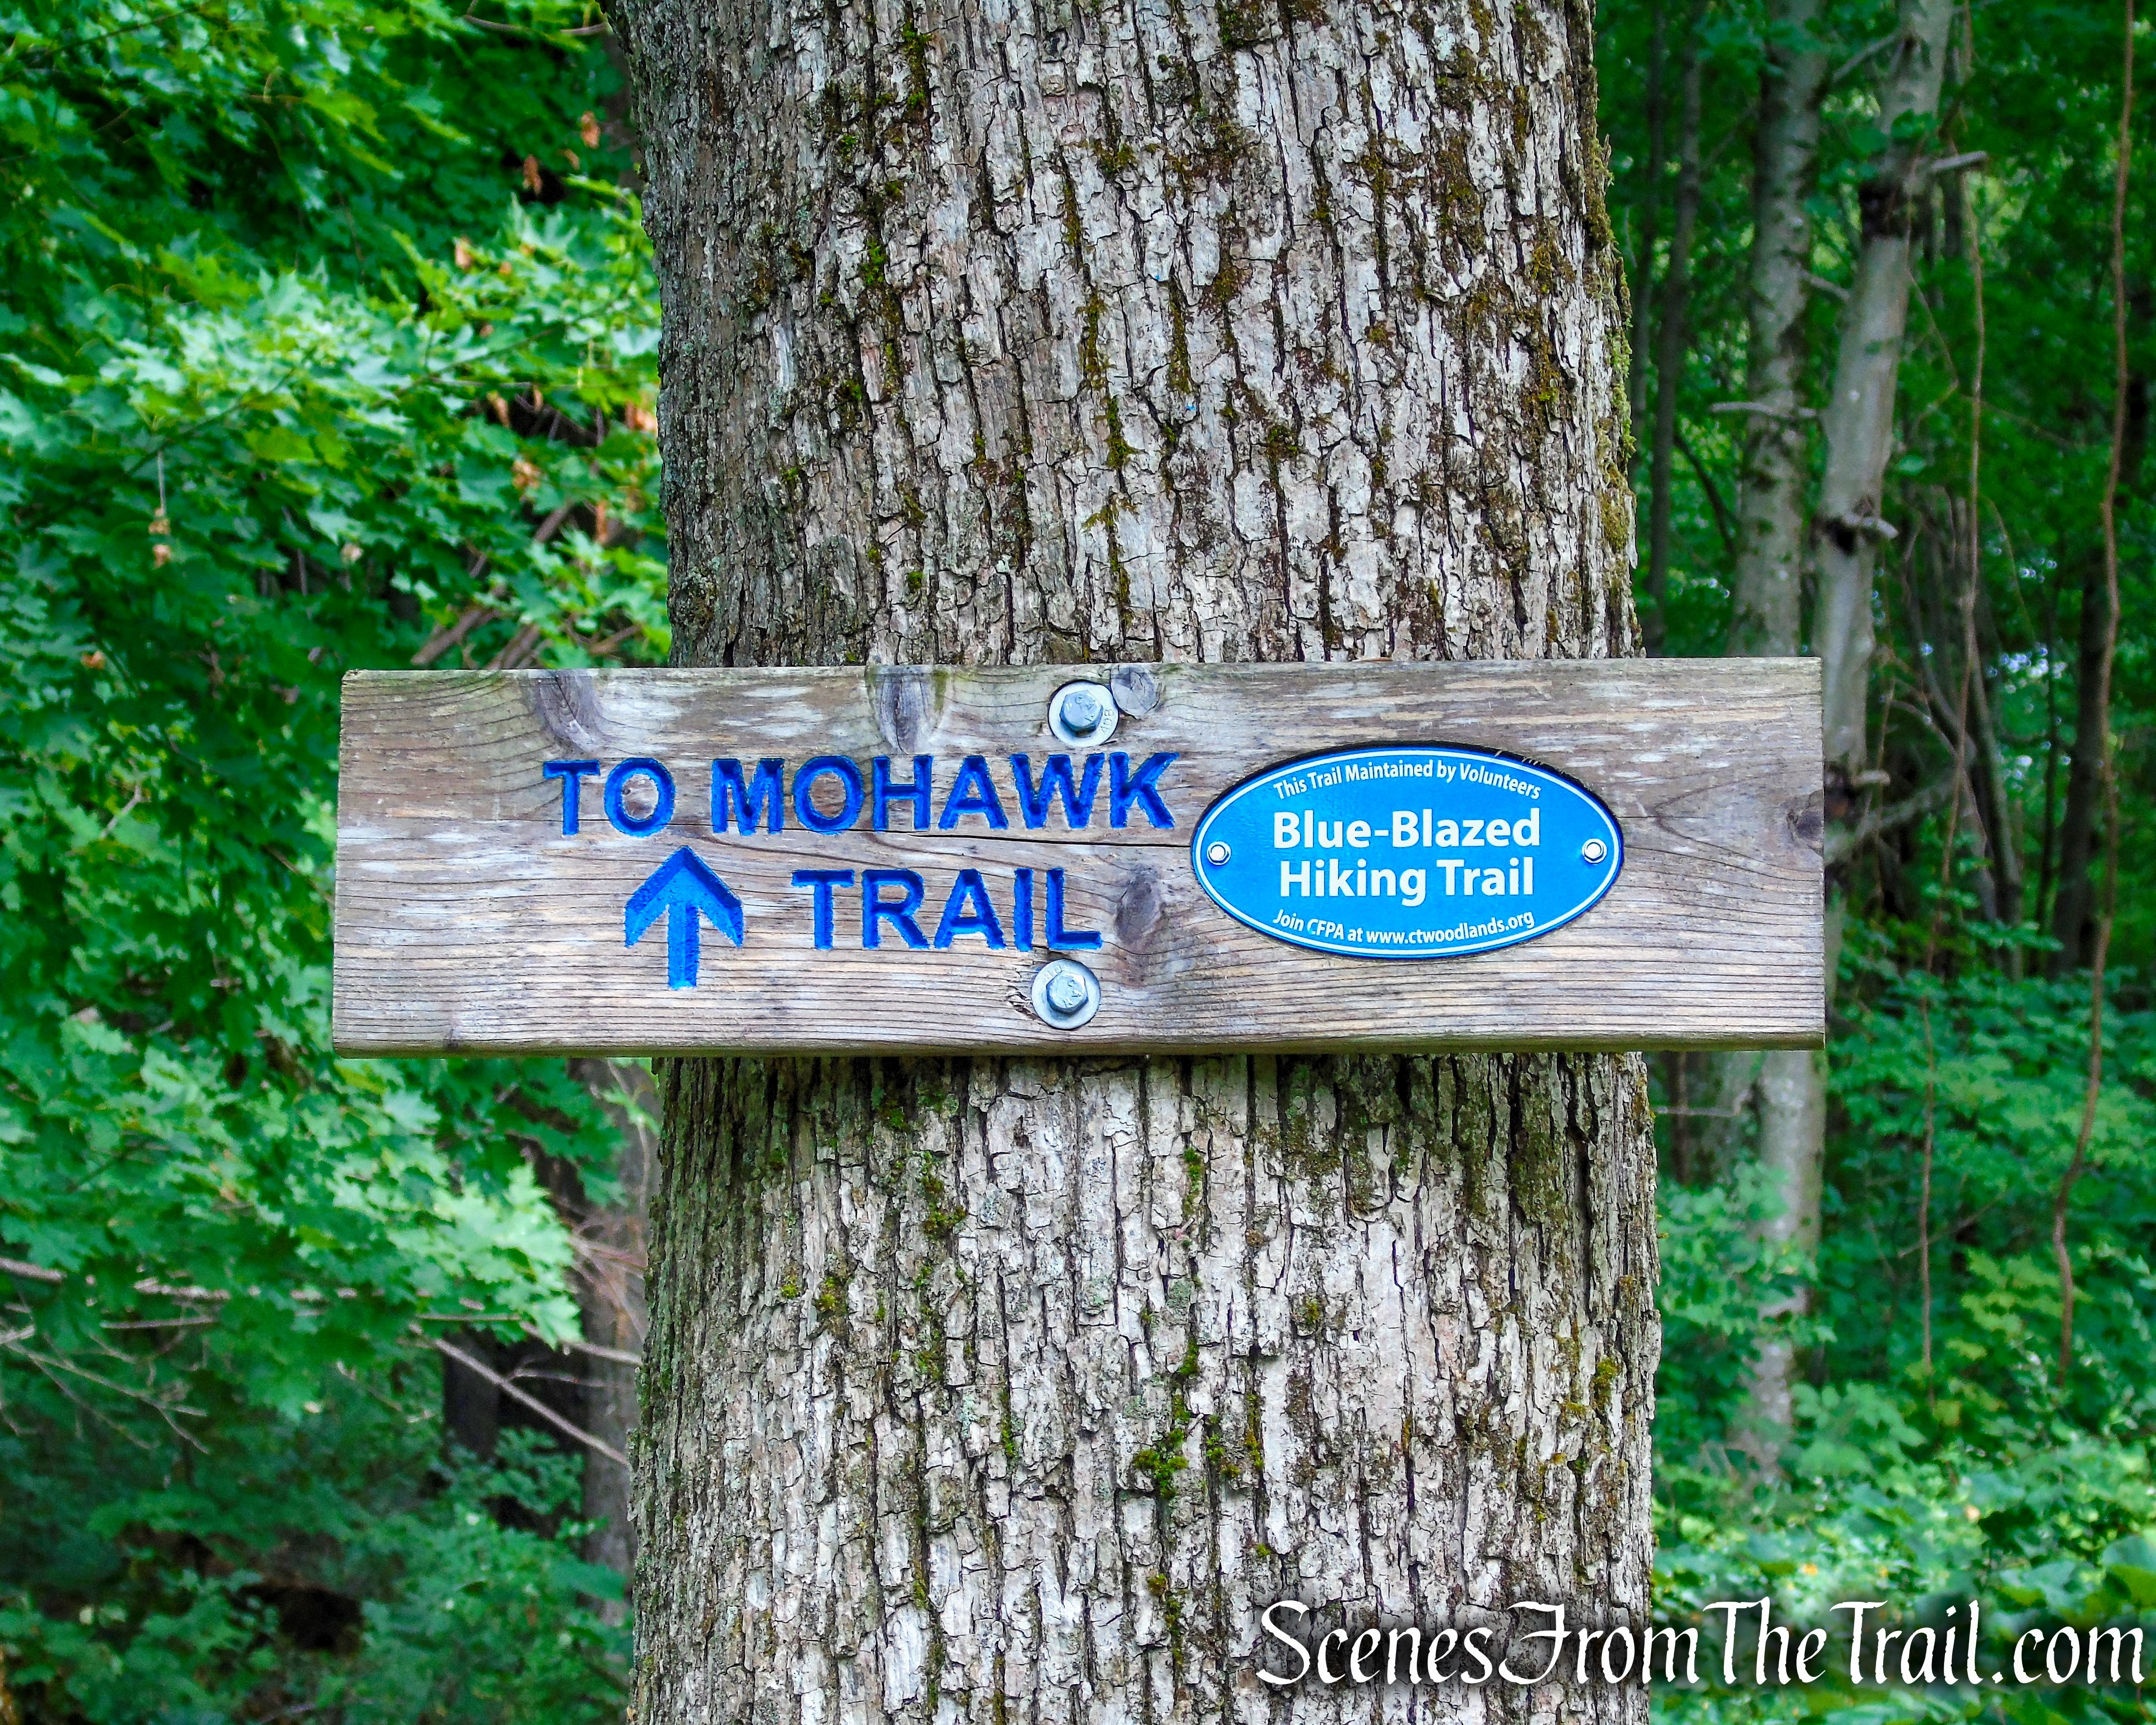 Mohawk Trail - Mohawk State Forest